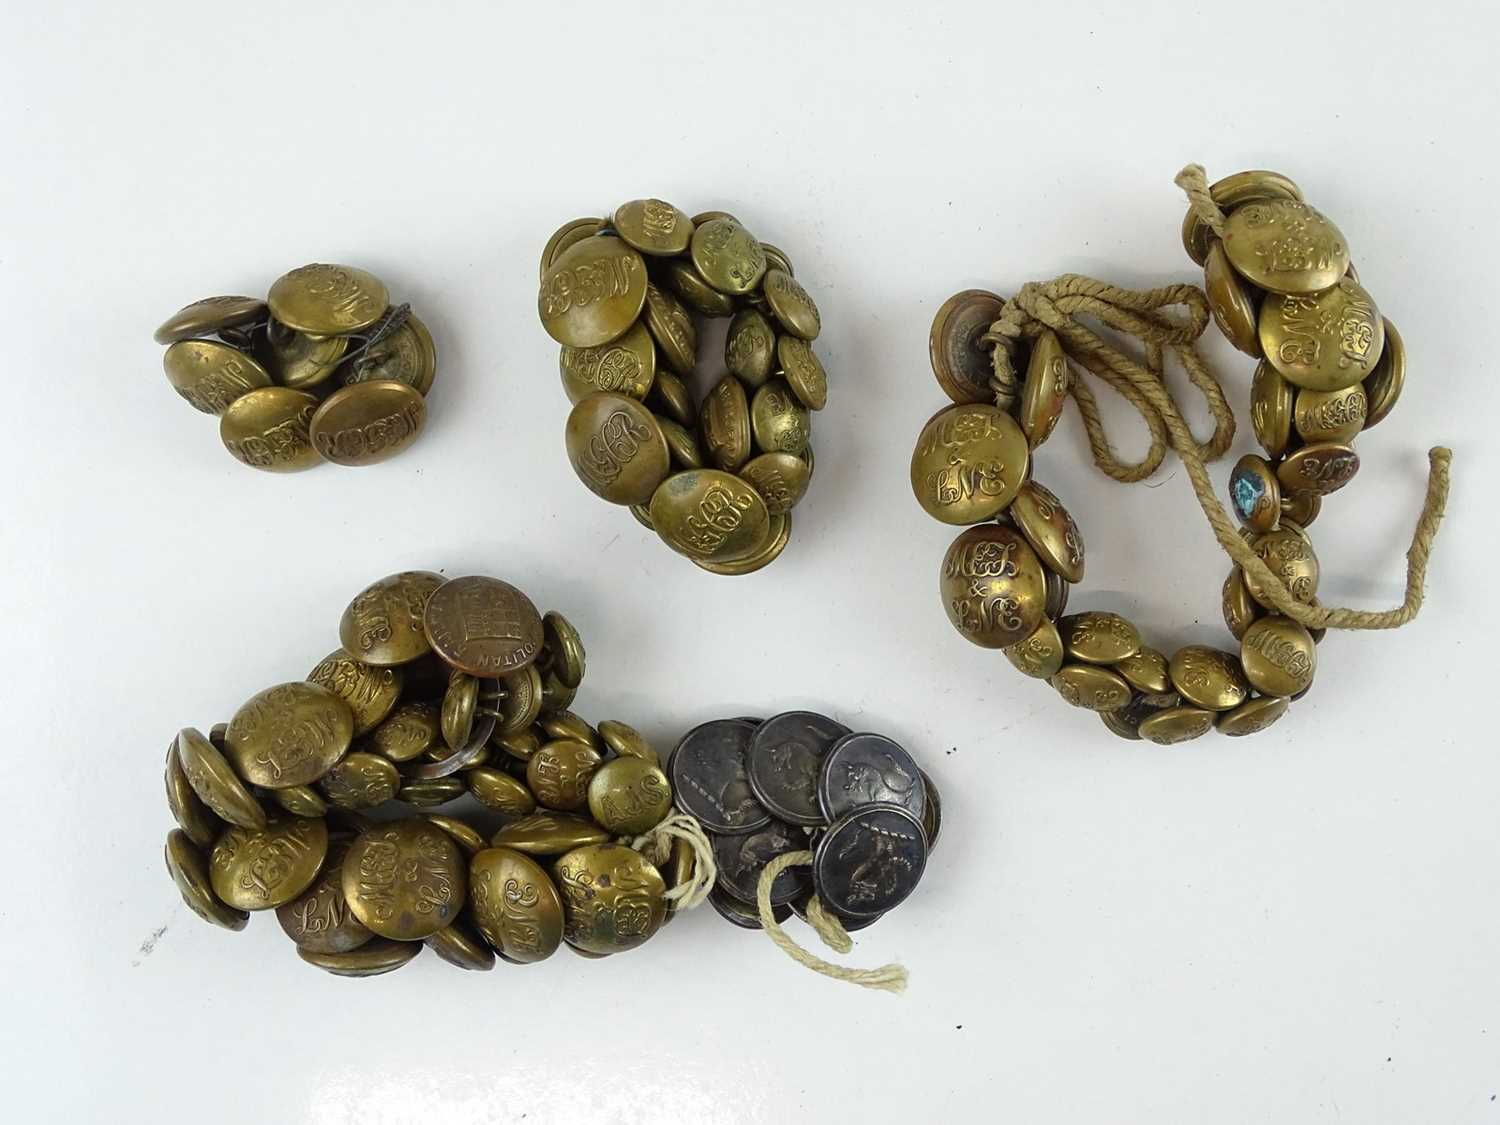 A quantity of brass uniform buttons - all appear to be for the Metropolitan Railway and associated